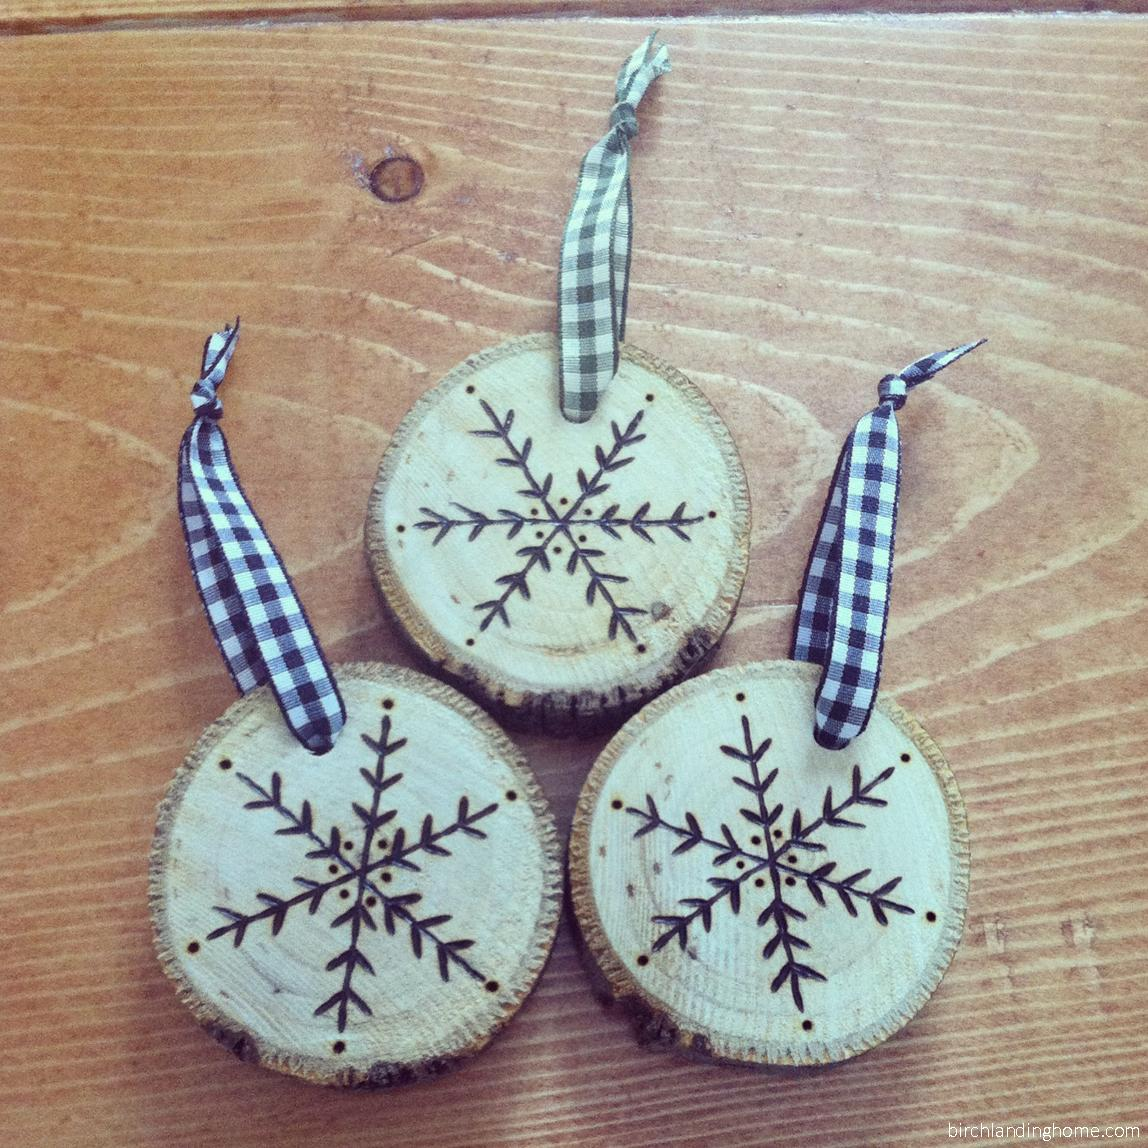 Birch Landing Home Hand-Etched Maple Snowflake Ornaments